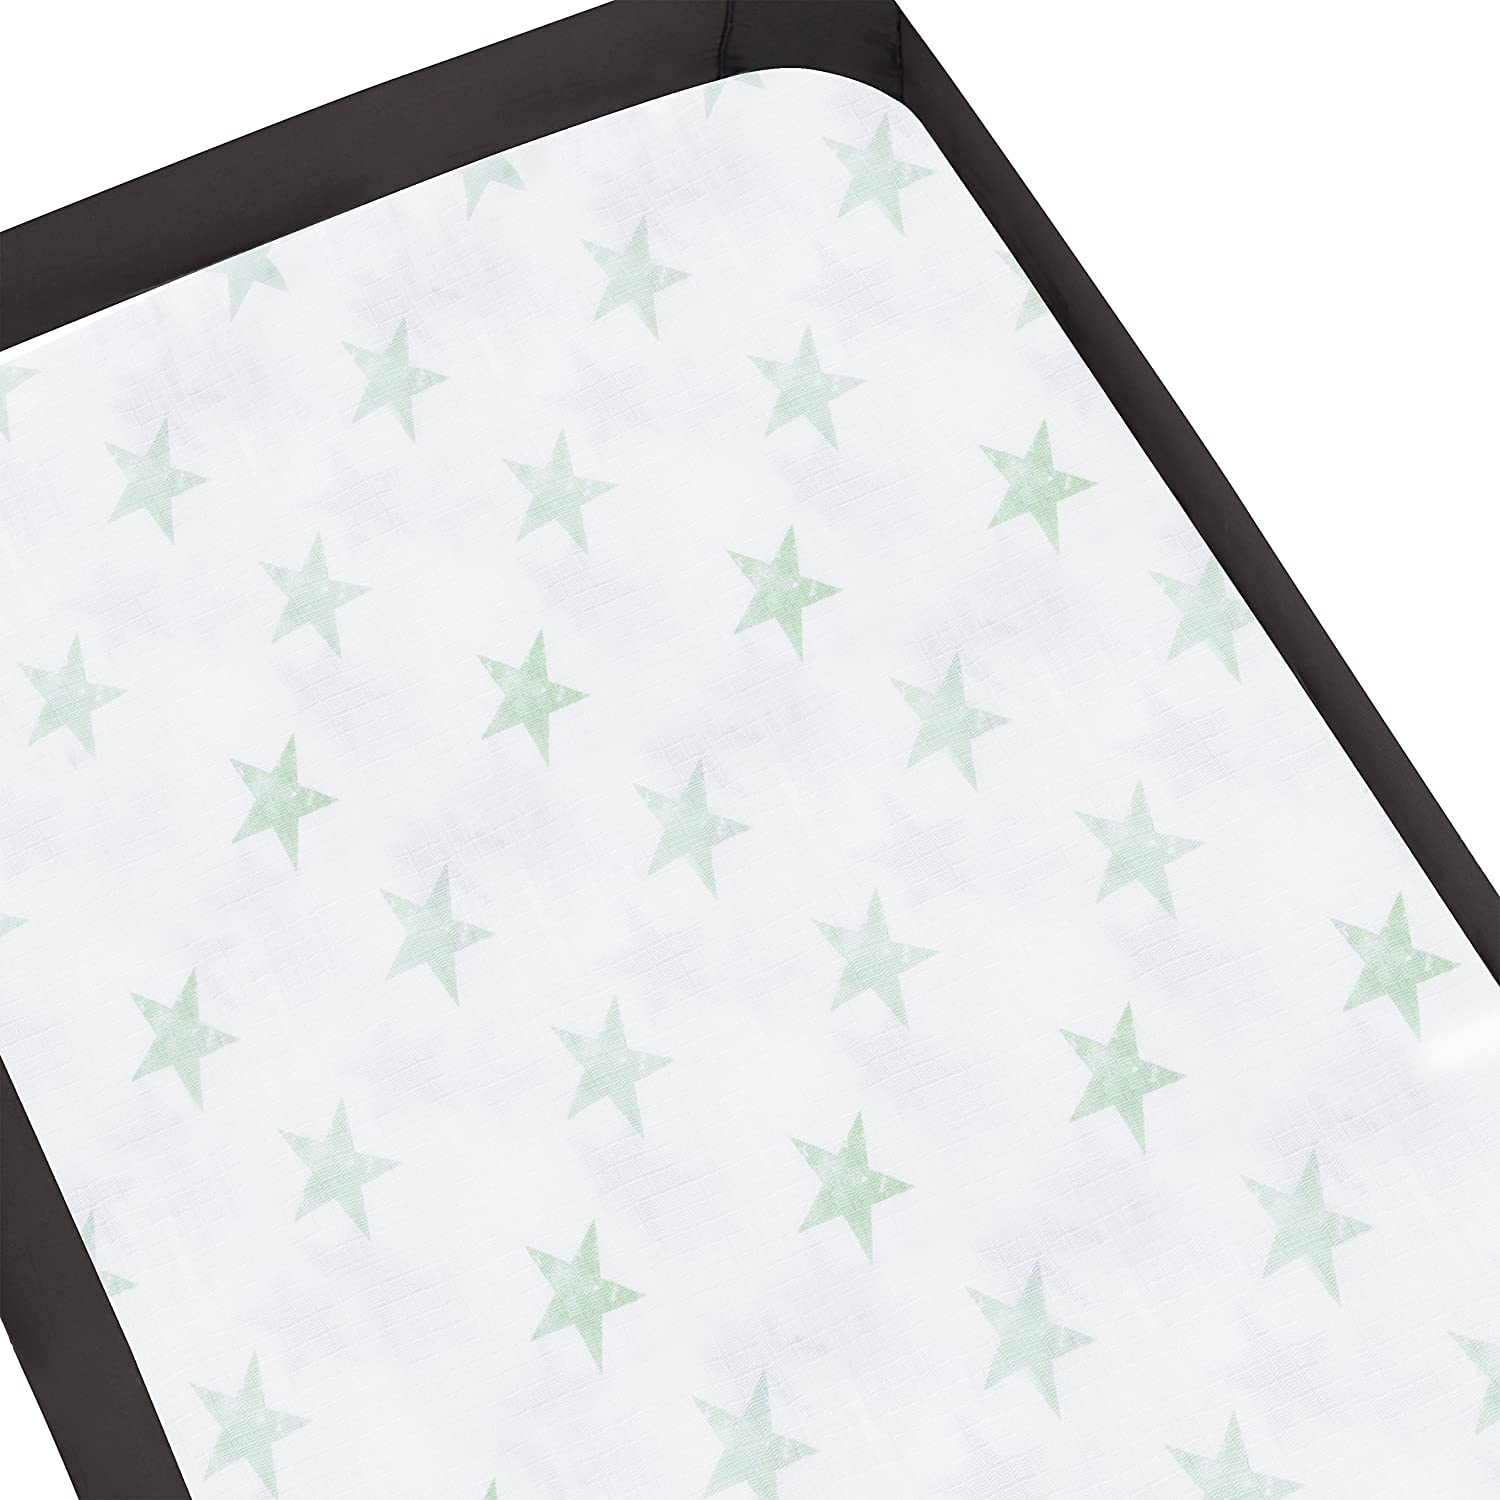 Aden by Aden + Anais Pack 'n Play Playard Crib Sheet, 100% Cotton Muslin, Super Soft, Breathable, Snug Fit Dusty - Stars S3723